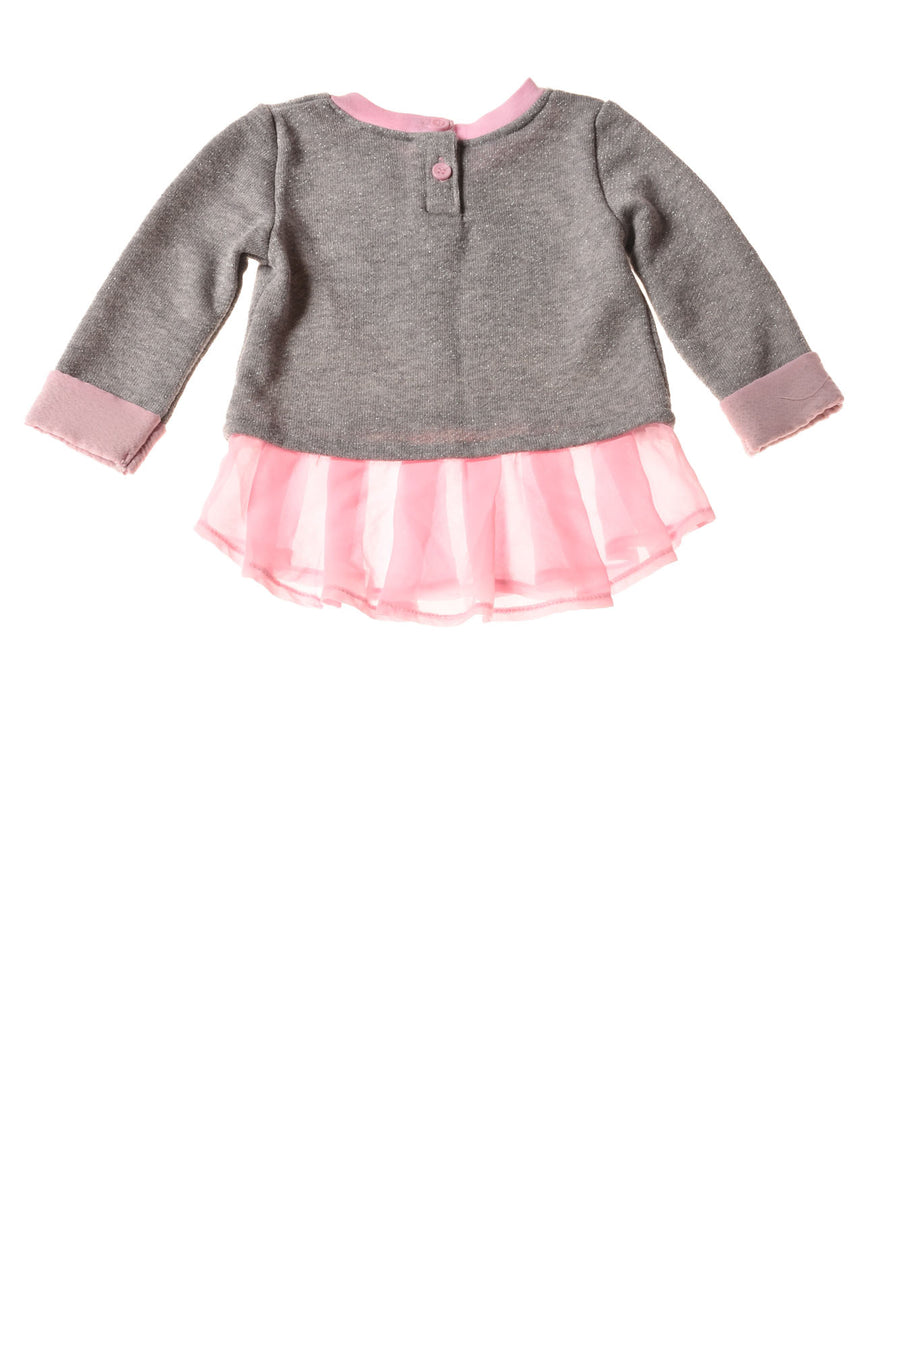 Baby Girl's Top By Little Lass